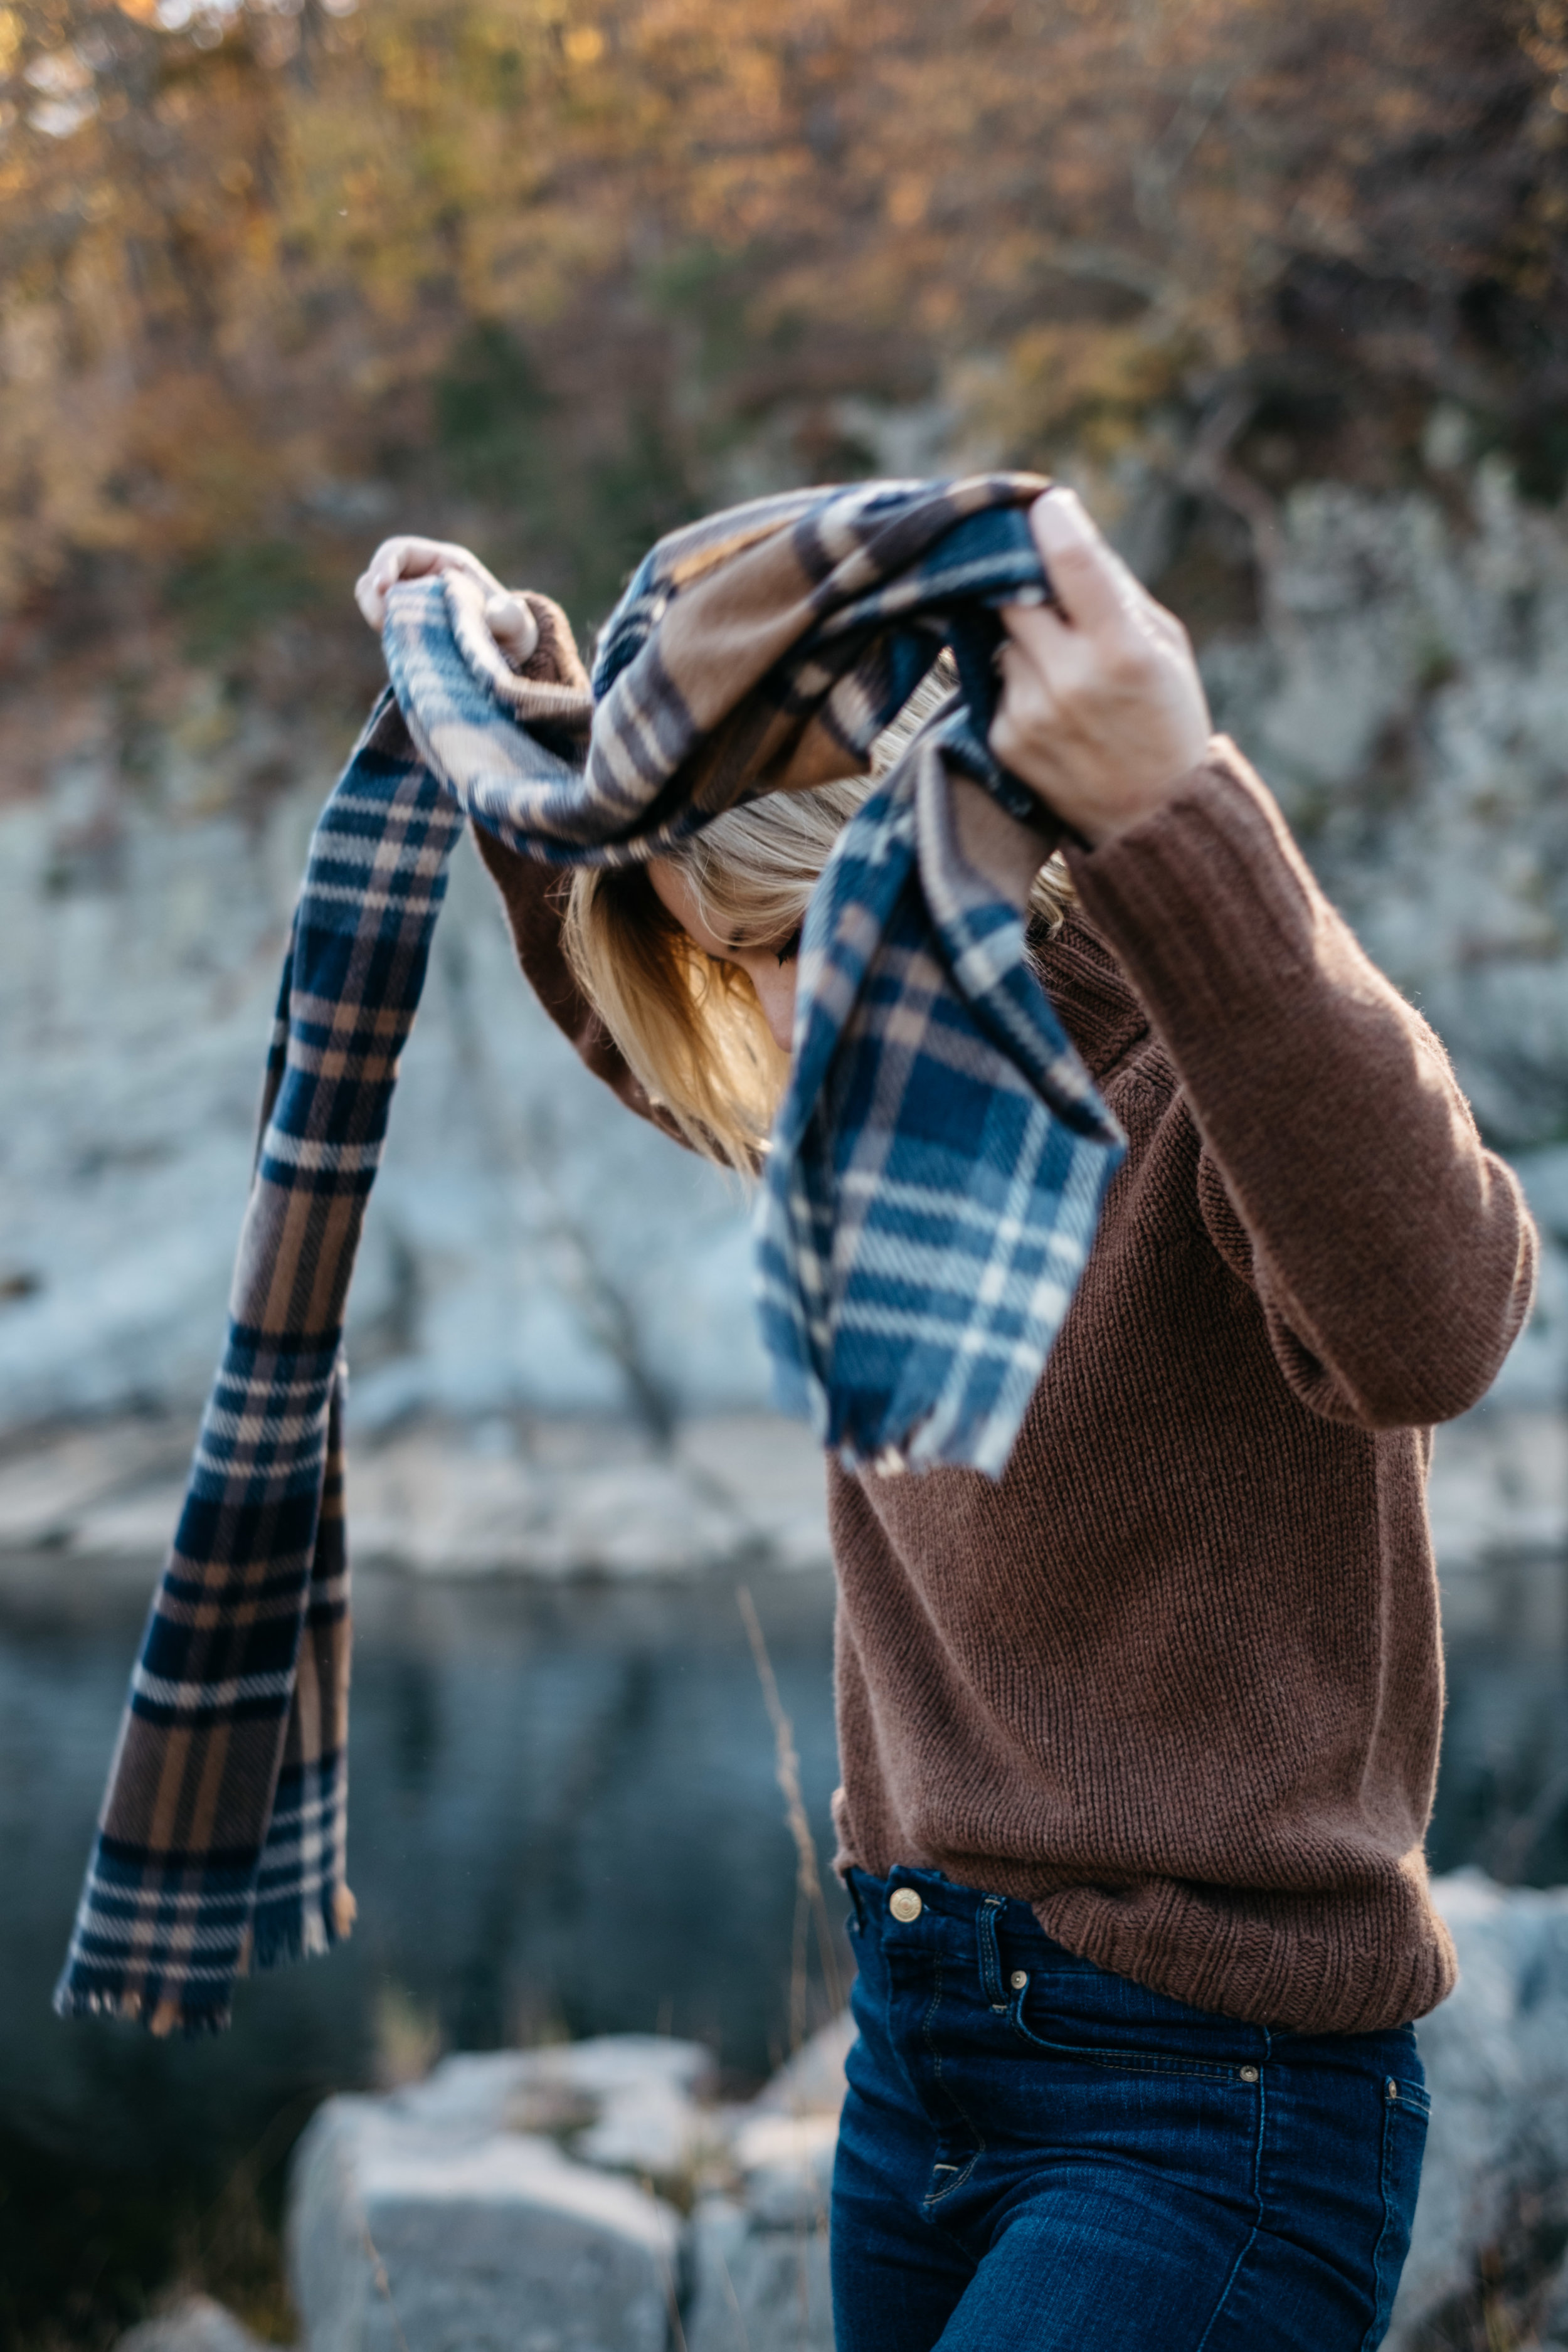 Hiking-Outfit-6.jpg